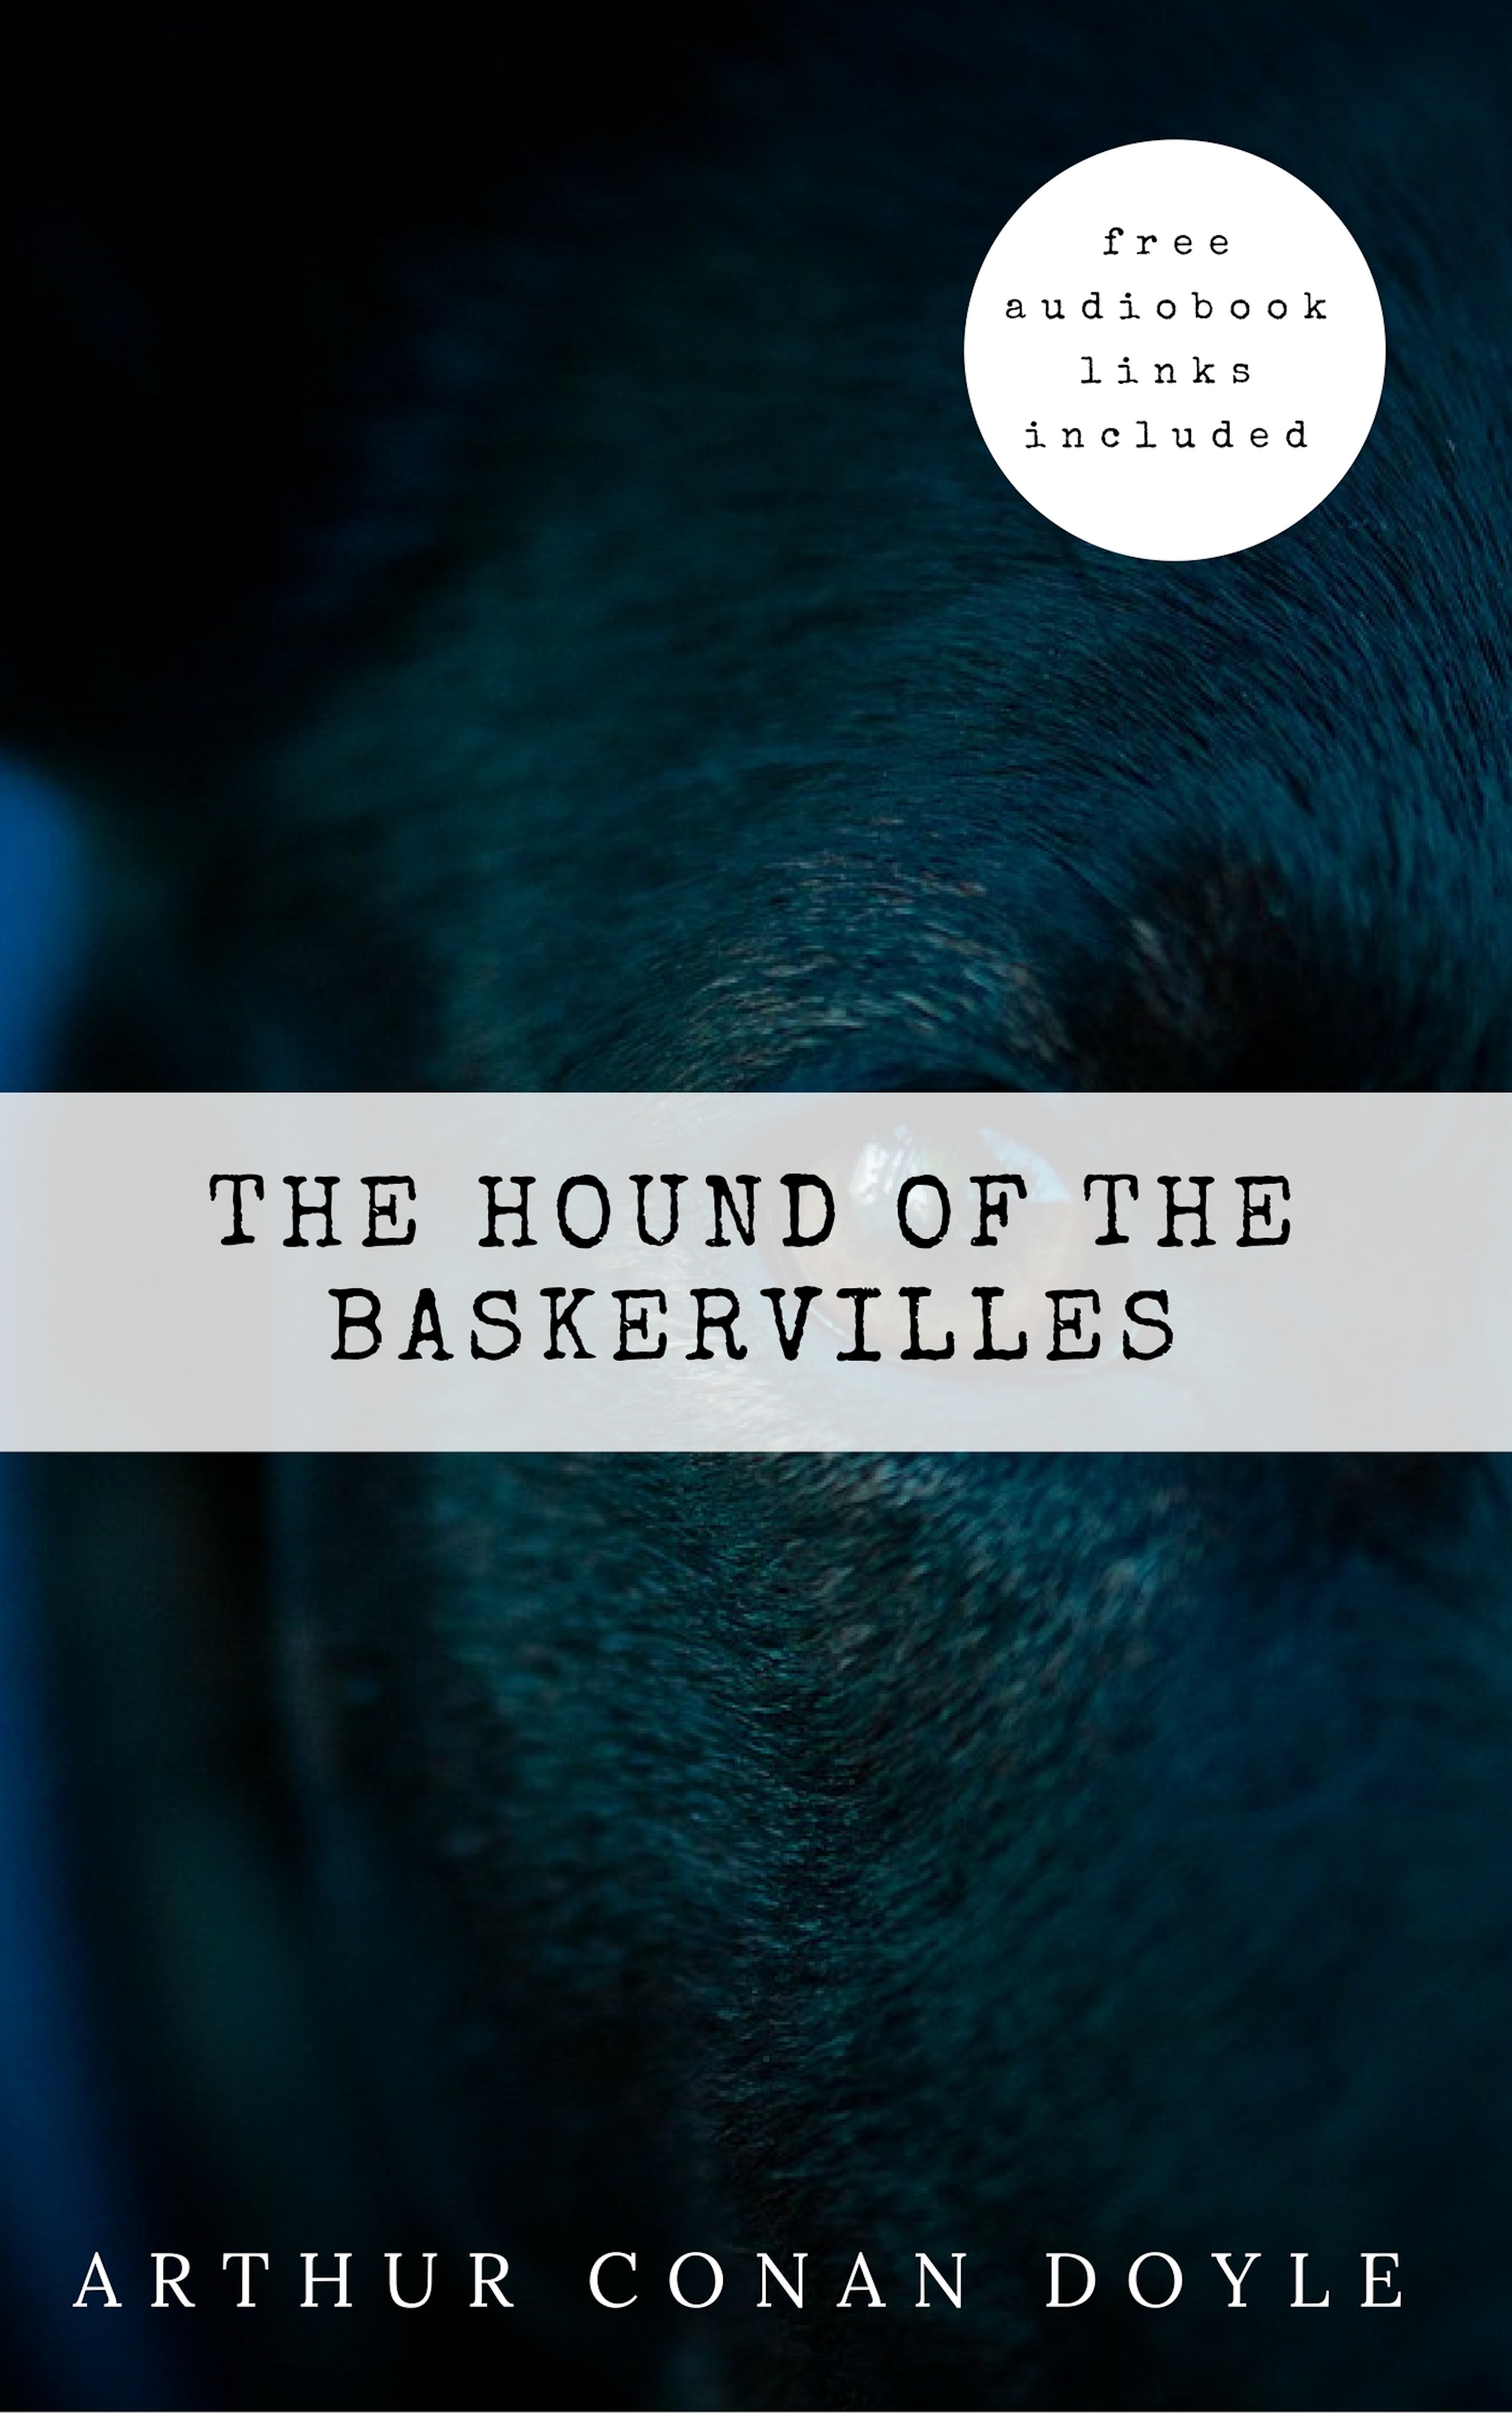 arthur conan doyle the hound of the baskervilles the sherlock holmes novels and stories 5